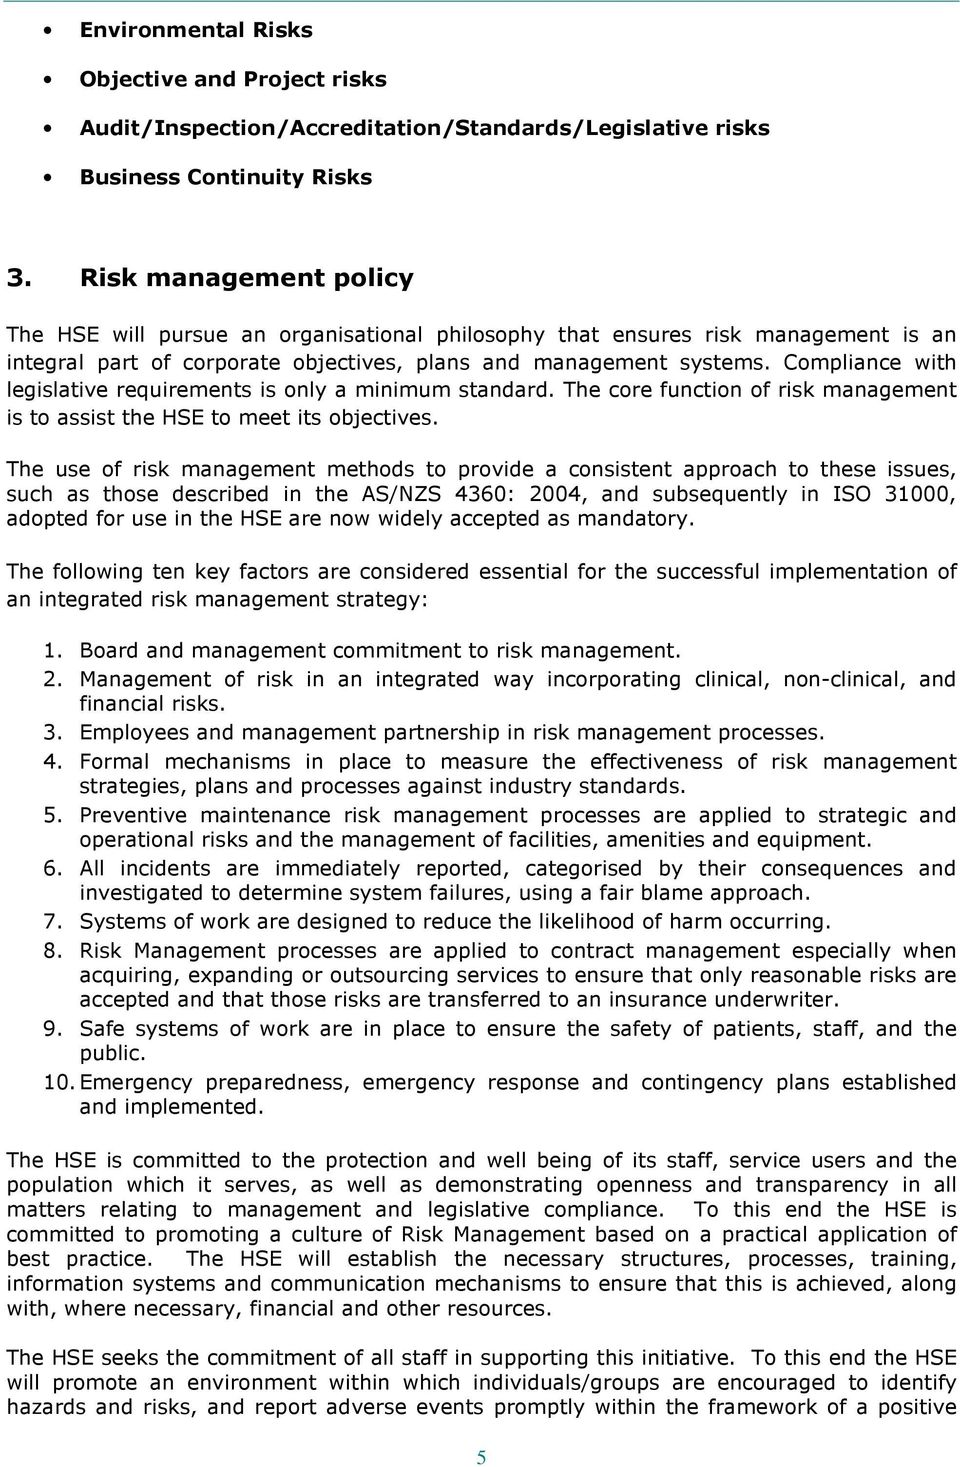 Compliance with legislative requirements is only a minimum standard. The core function of risk management is to assist the HSE to meet its objectives.